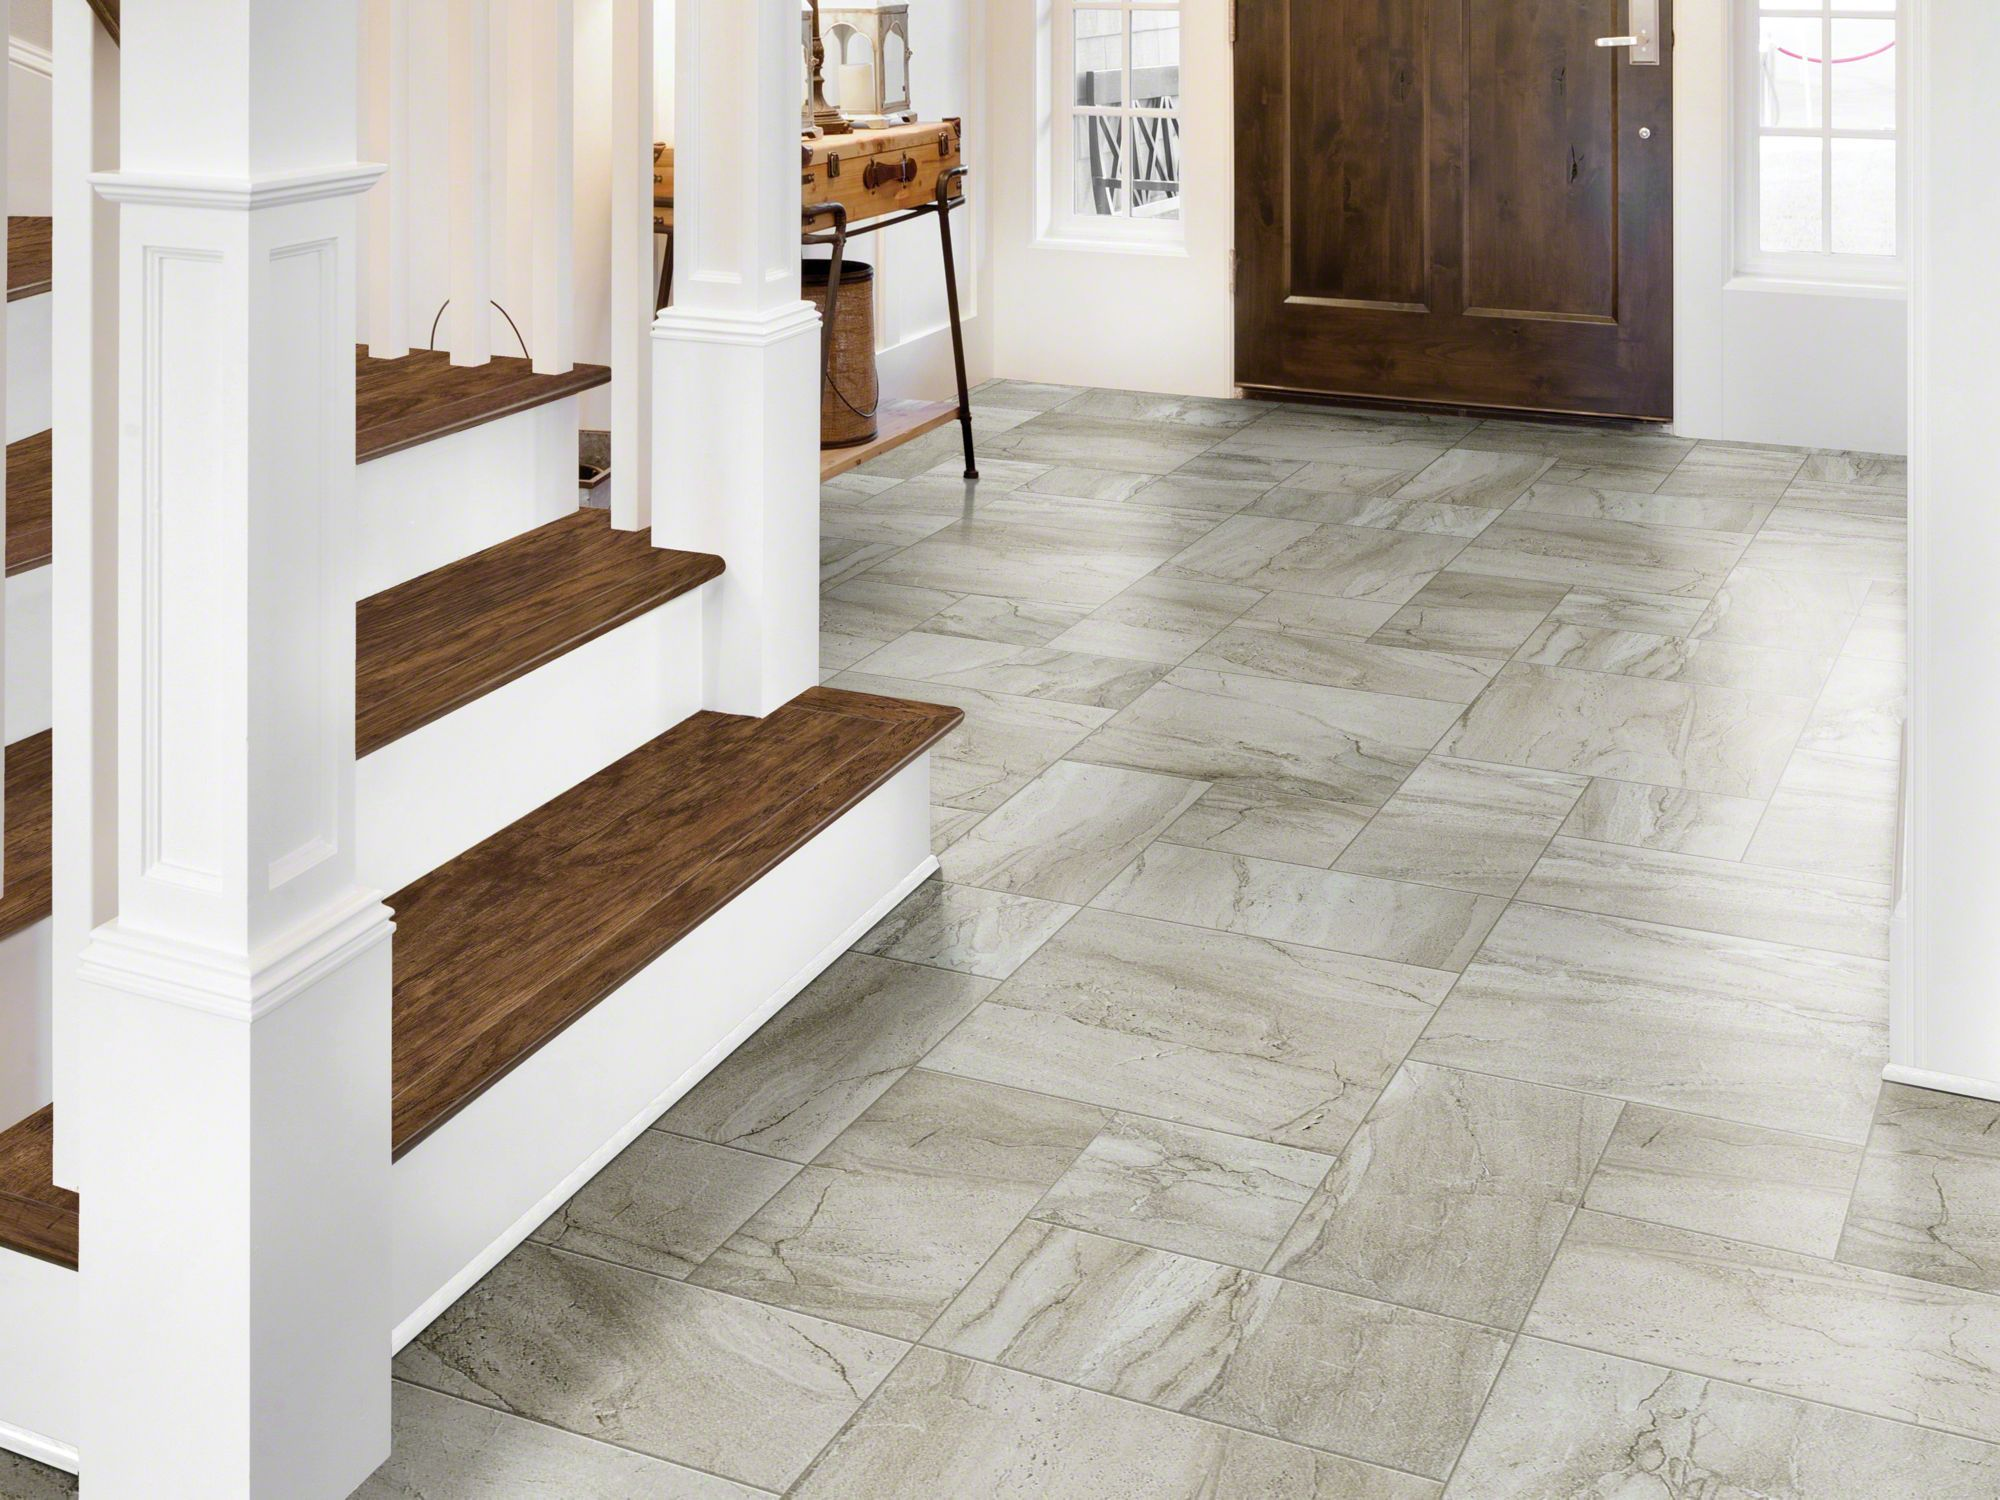 Porcelain Tile Flooring Tile floor, Porcelain wood tile